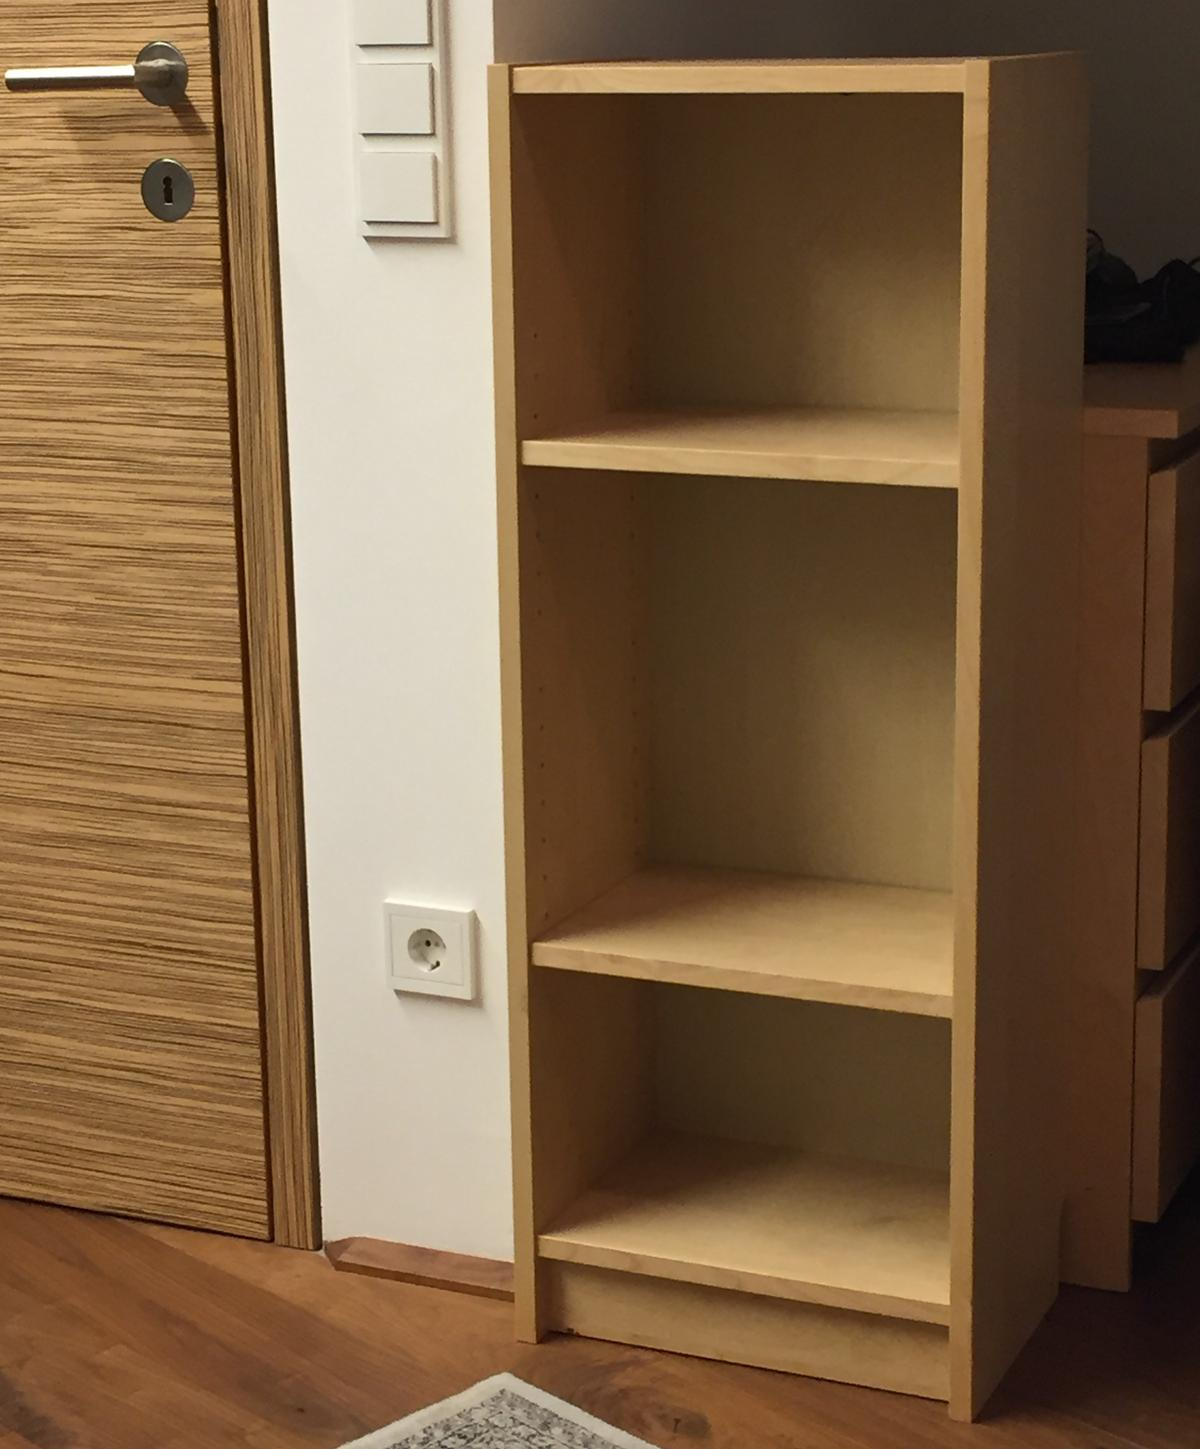 Regal Birke Regal Ikea Bücherregal Billy - Birke In 1130 Wien For €25.00 For Sale | Shpock